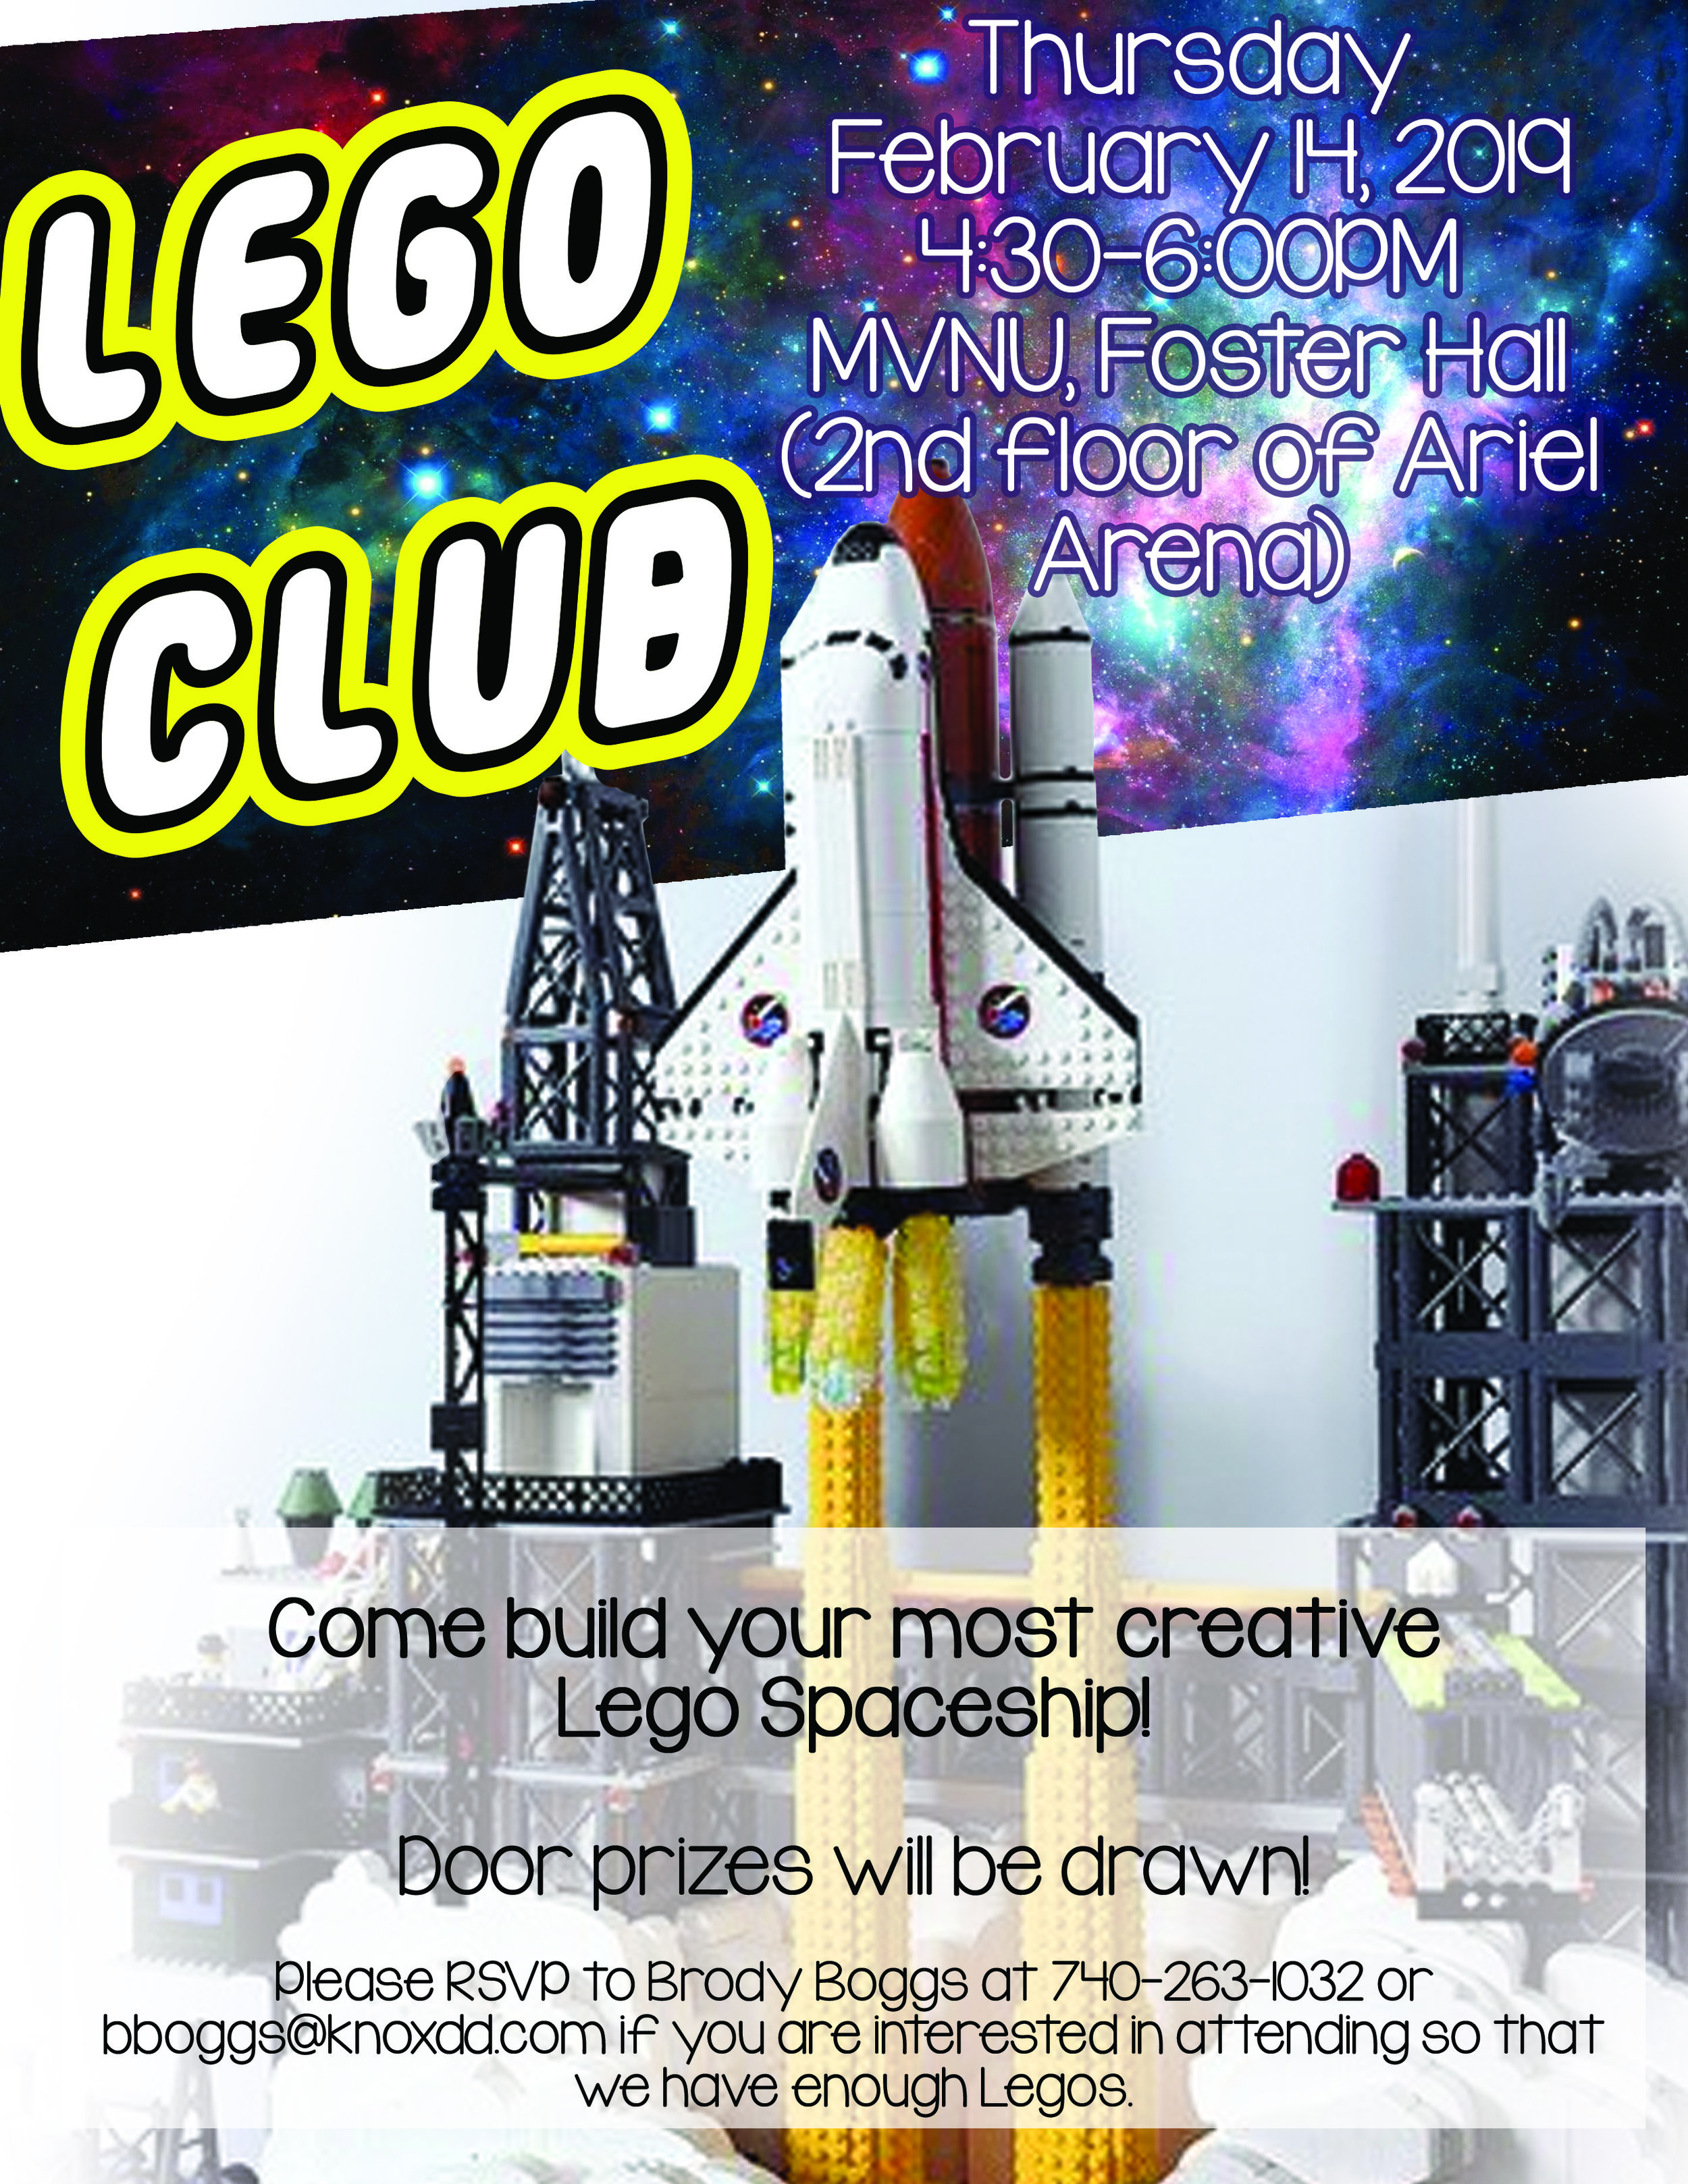 Lego Club flyer Feb 14.jpg